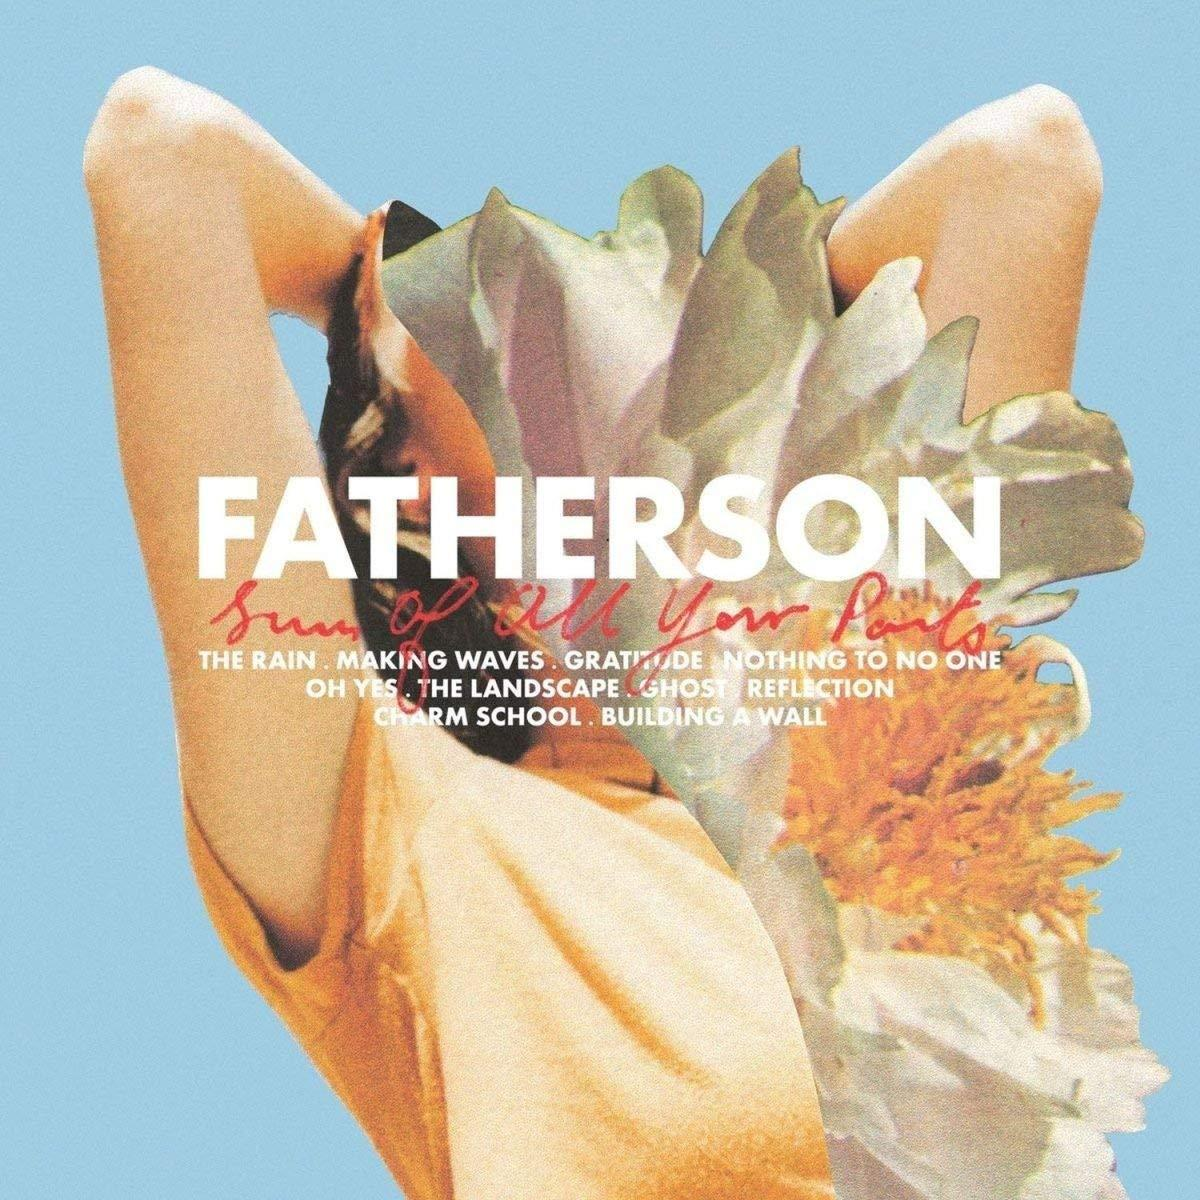 Fatherson Sum Of All Your Parts Review